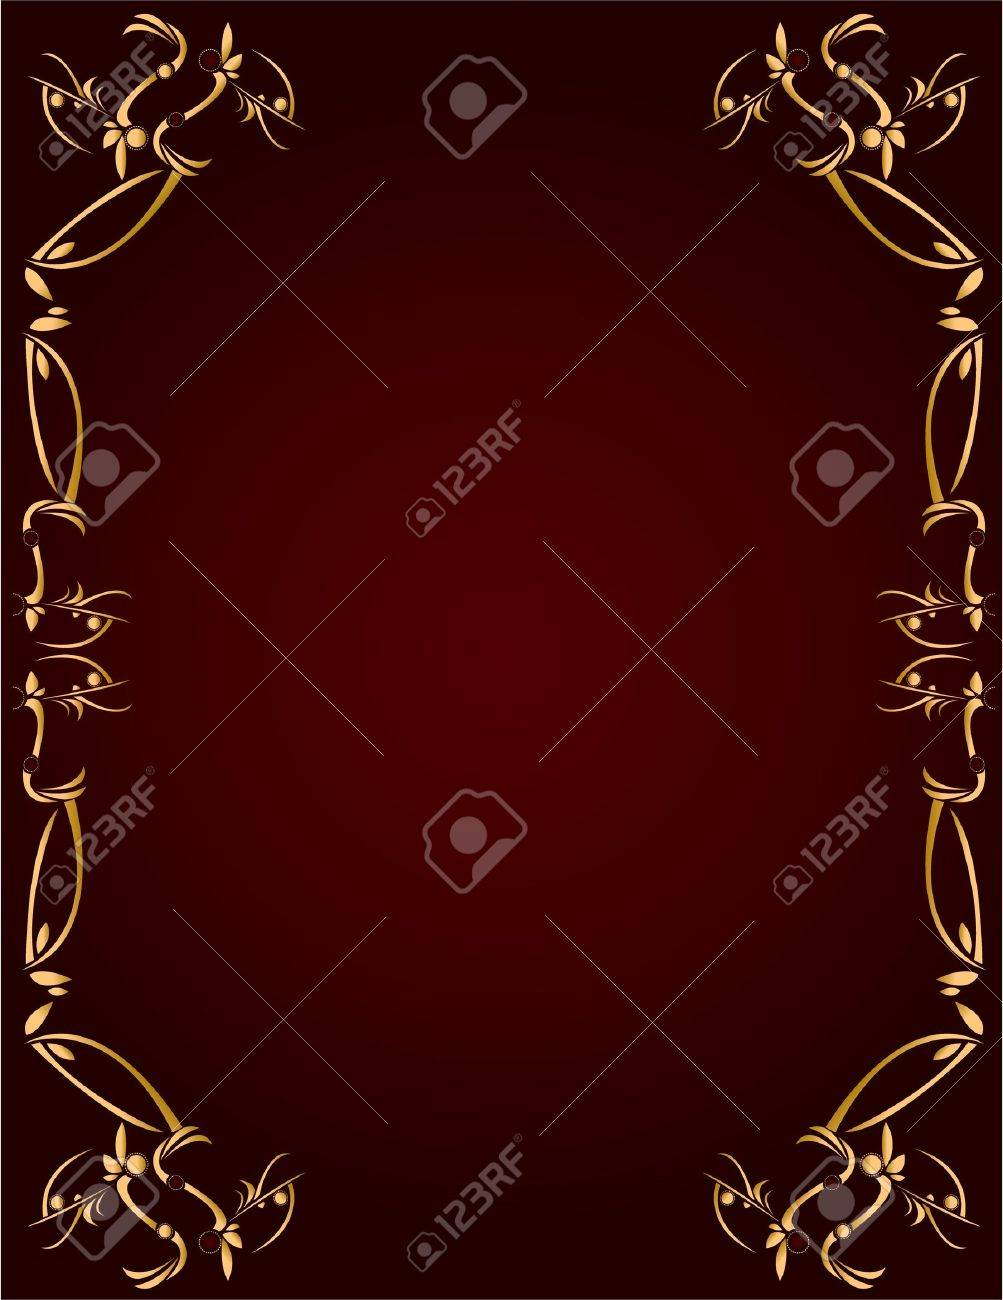 Gold abstract design on a burgundy background with space for copy - 5162056